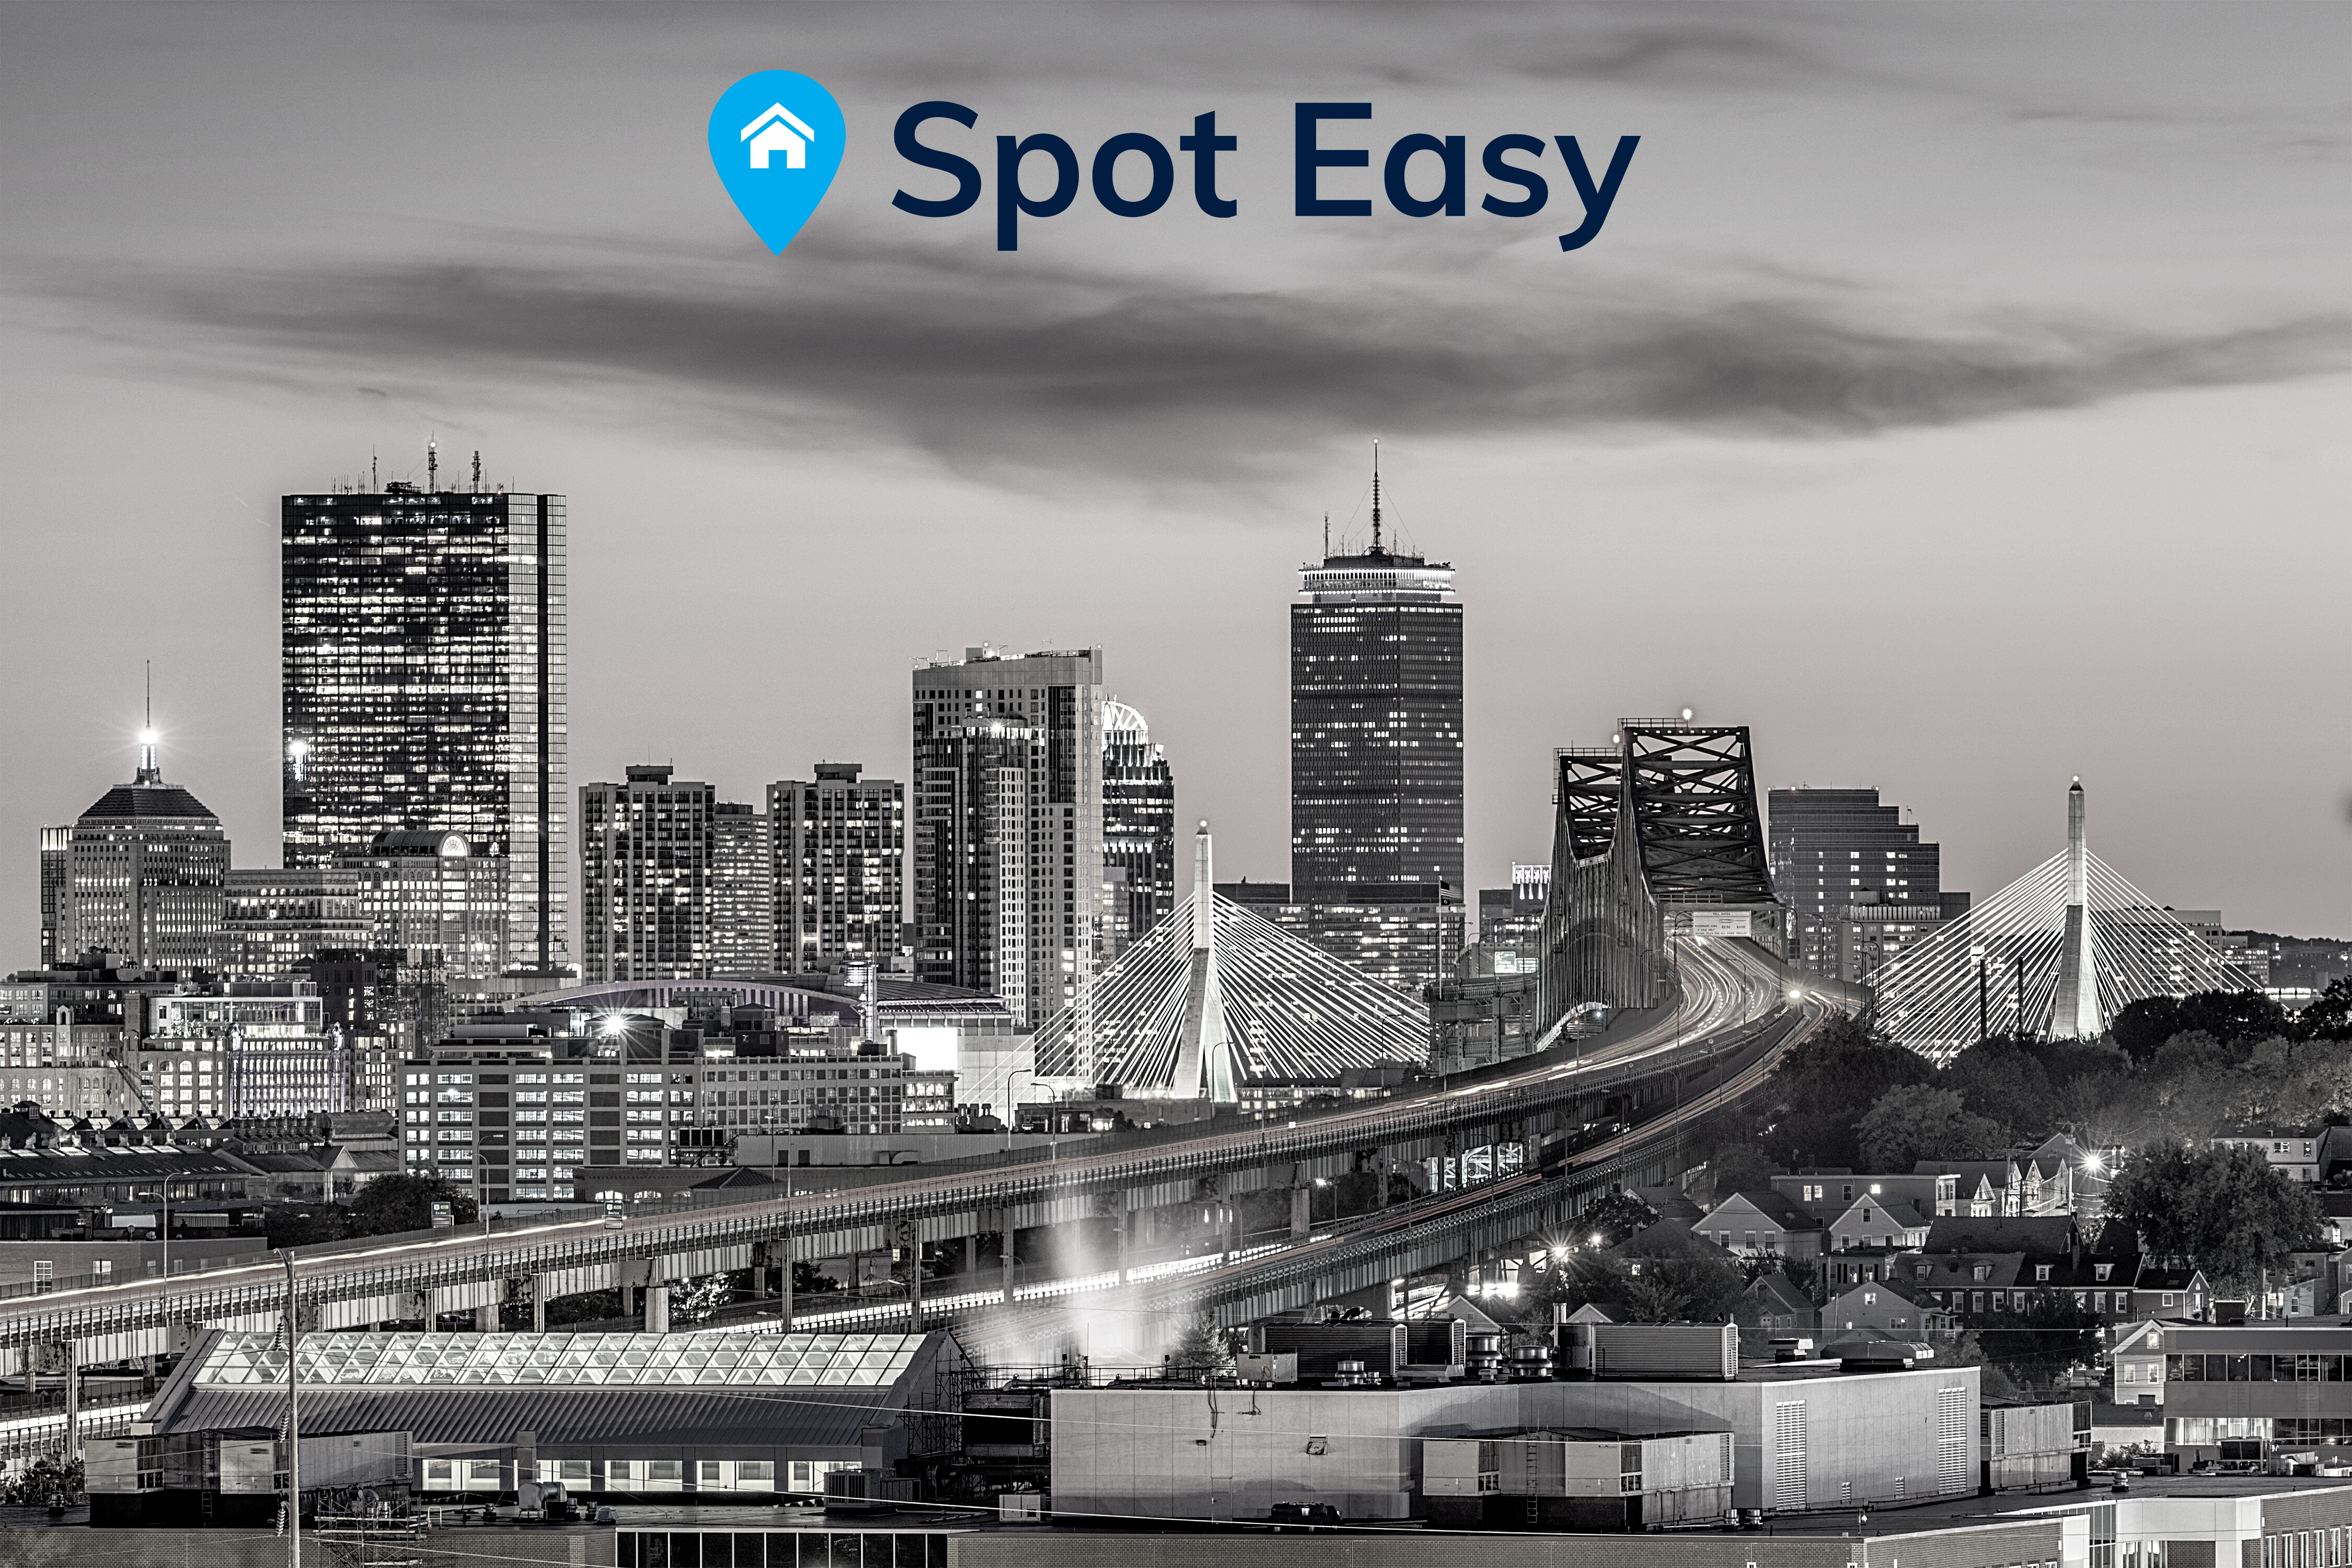 Image of Boston skyline in black and white photo, city in Massachusetts, featuring logo of Spot Easy